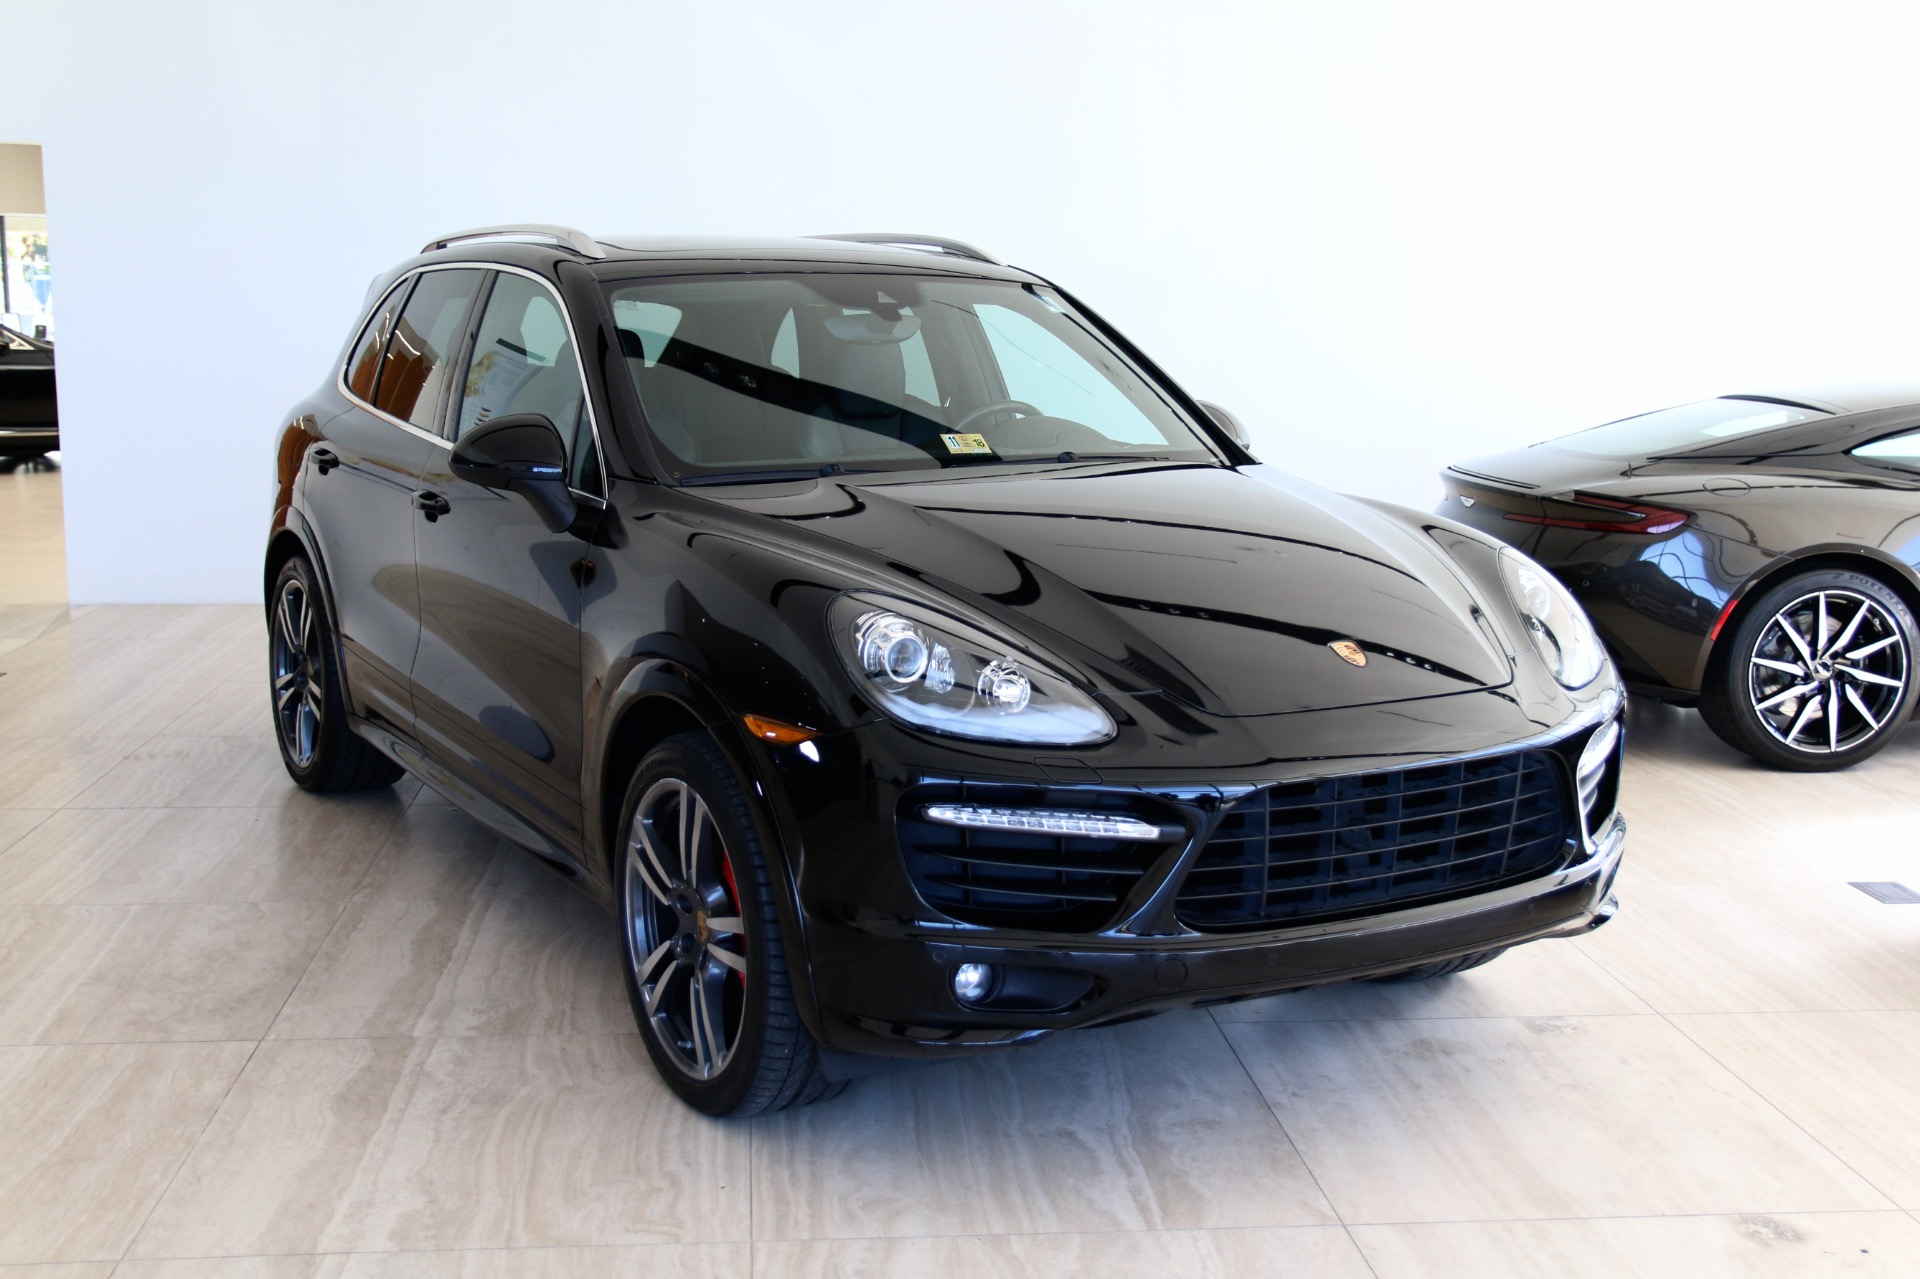 2014 porsche cayenne gts stock pla77687 for sale near vienna va va porsche dealer for sale. Black Bedroom Furniture Sets. Home Design Ideas